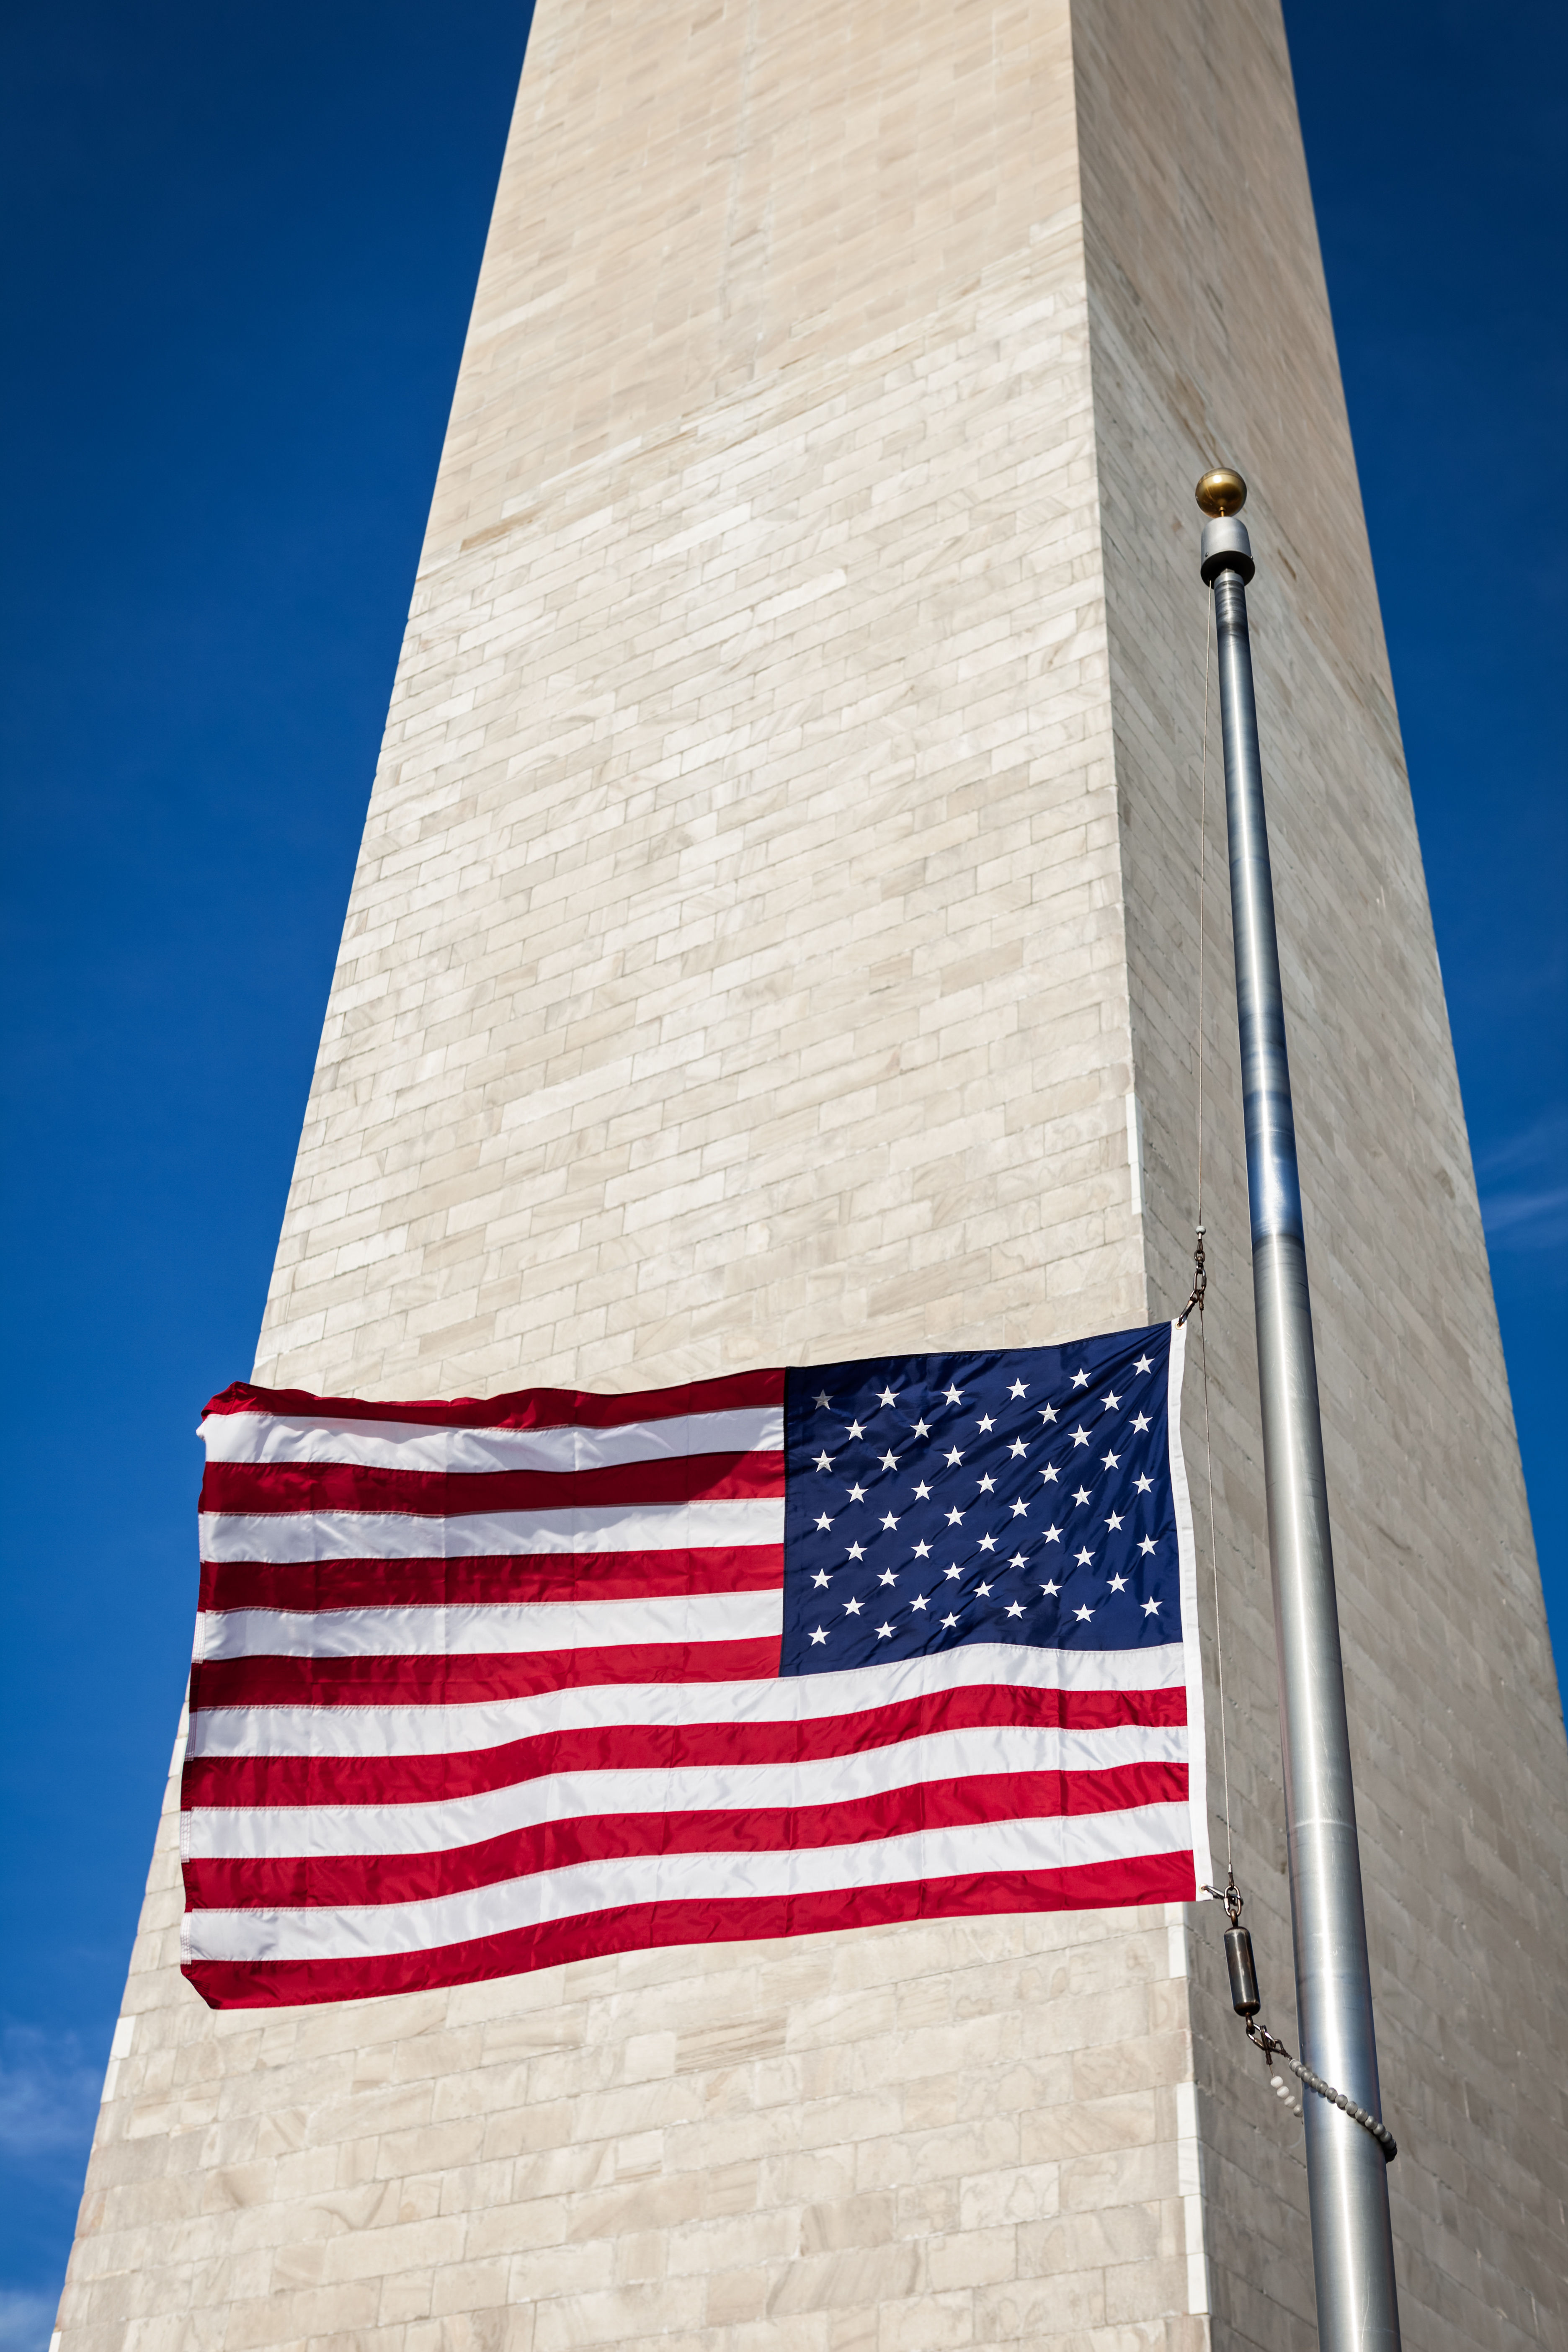 United States Flag flying at half-staff in front of the Washington Monument (eurobanks/Shutterstock)